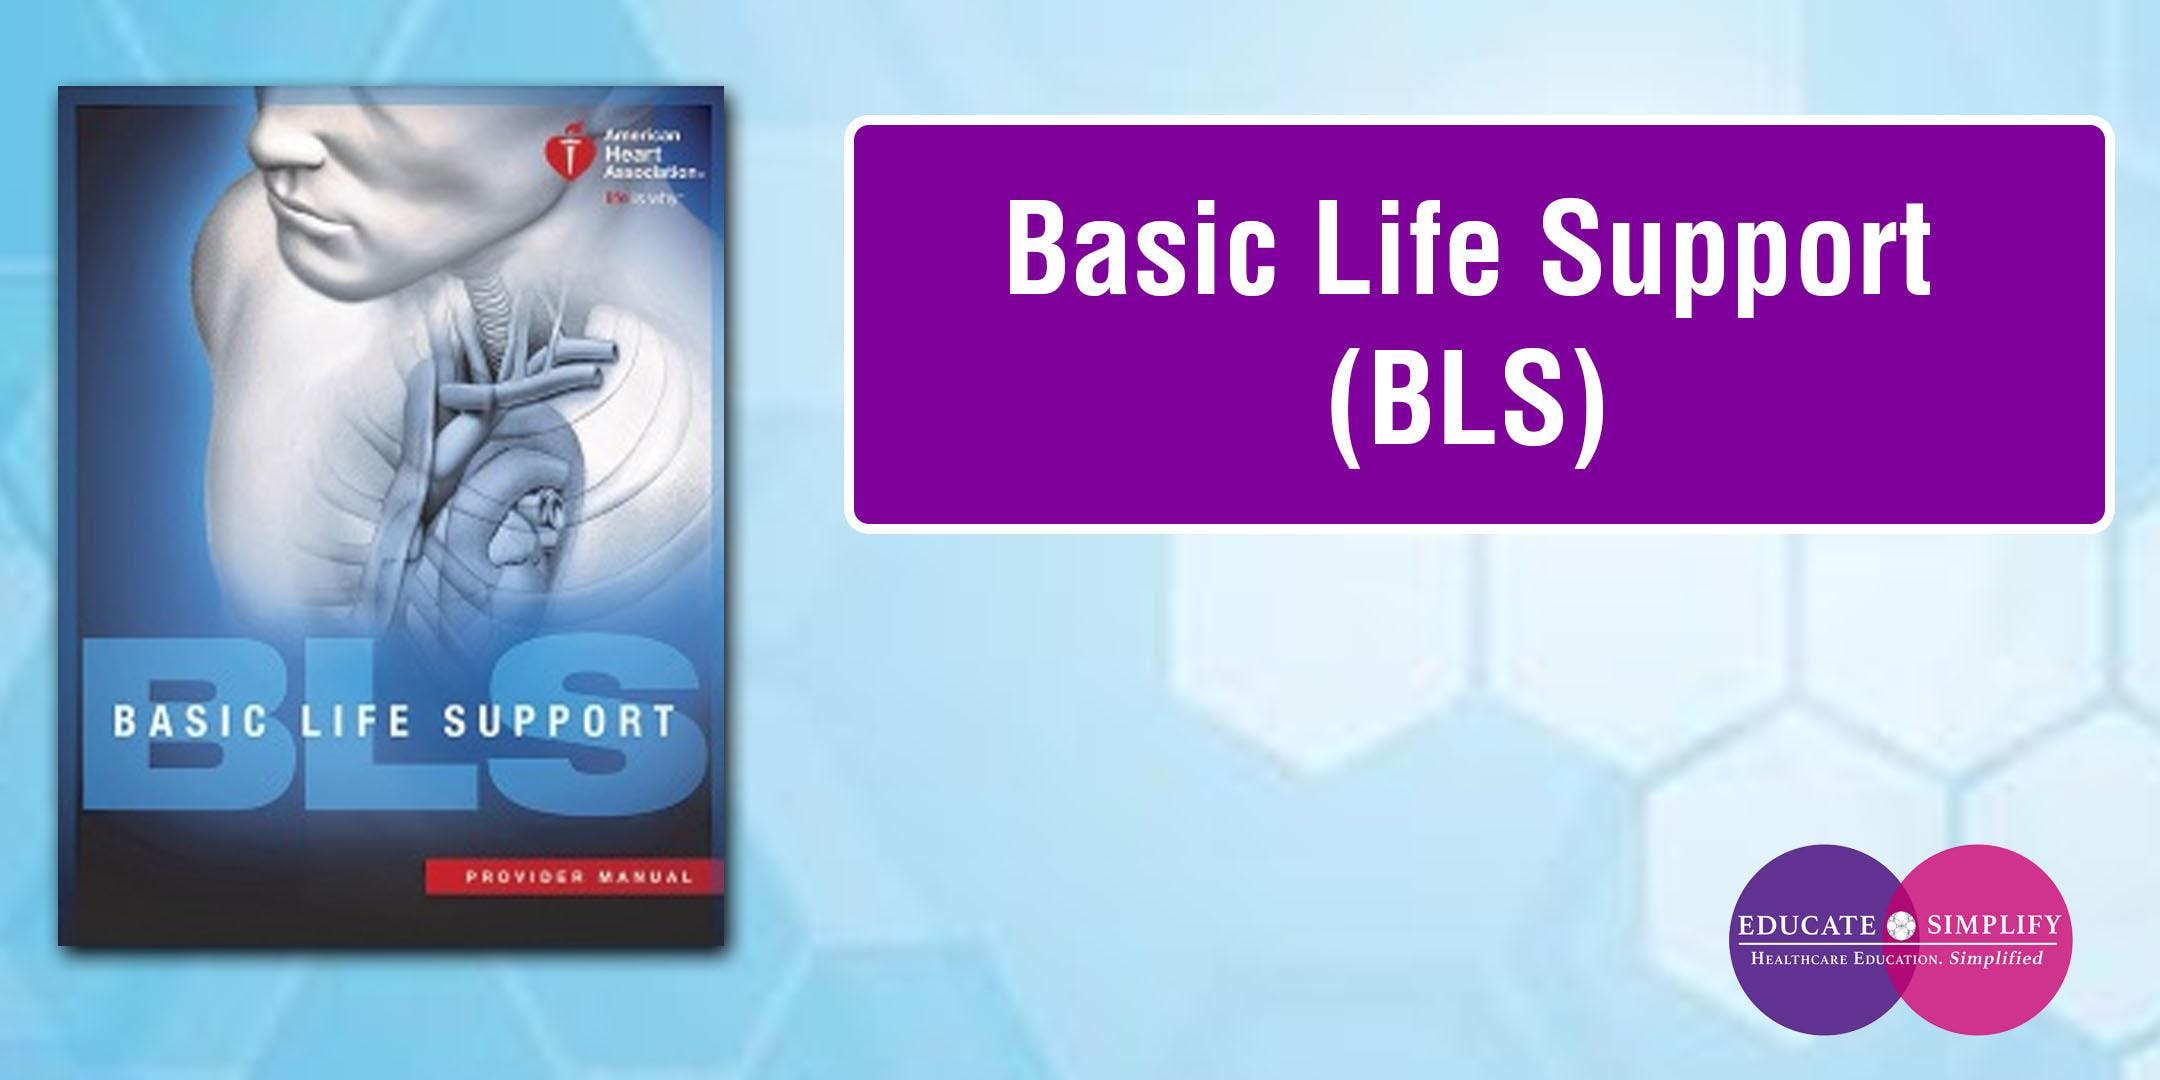 Basic Life Support Bls 15 Aug 2018